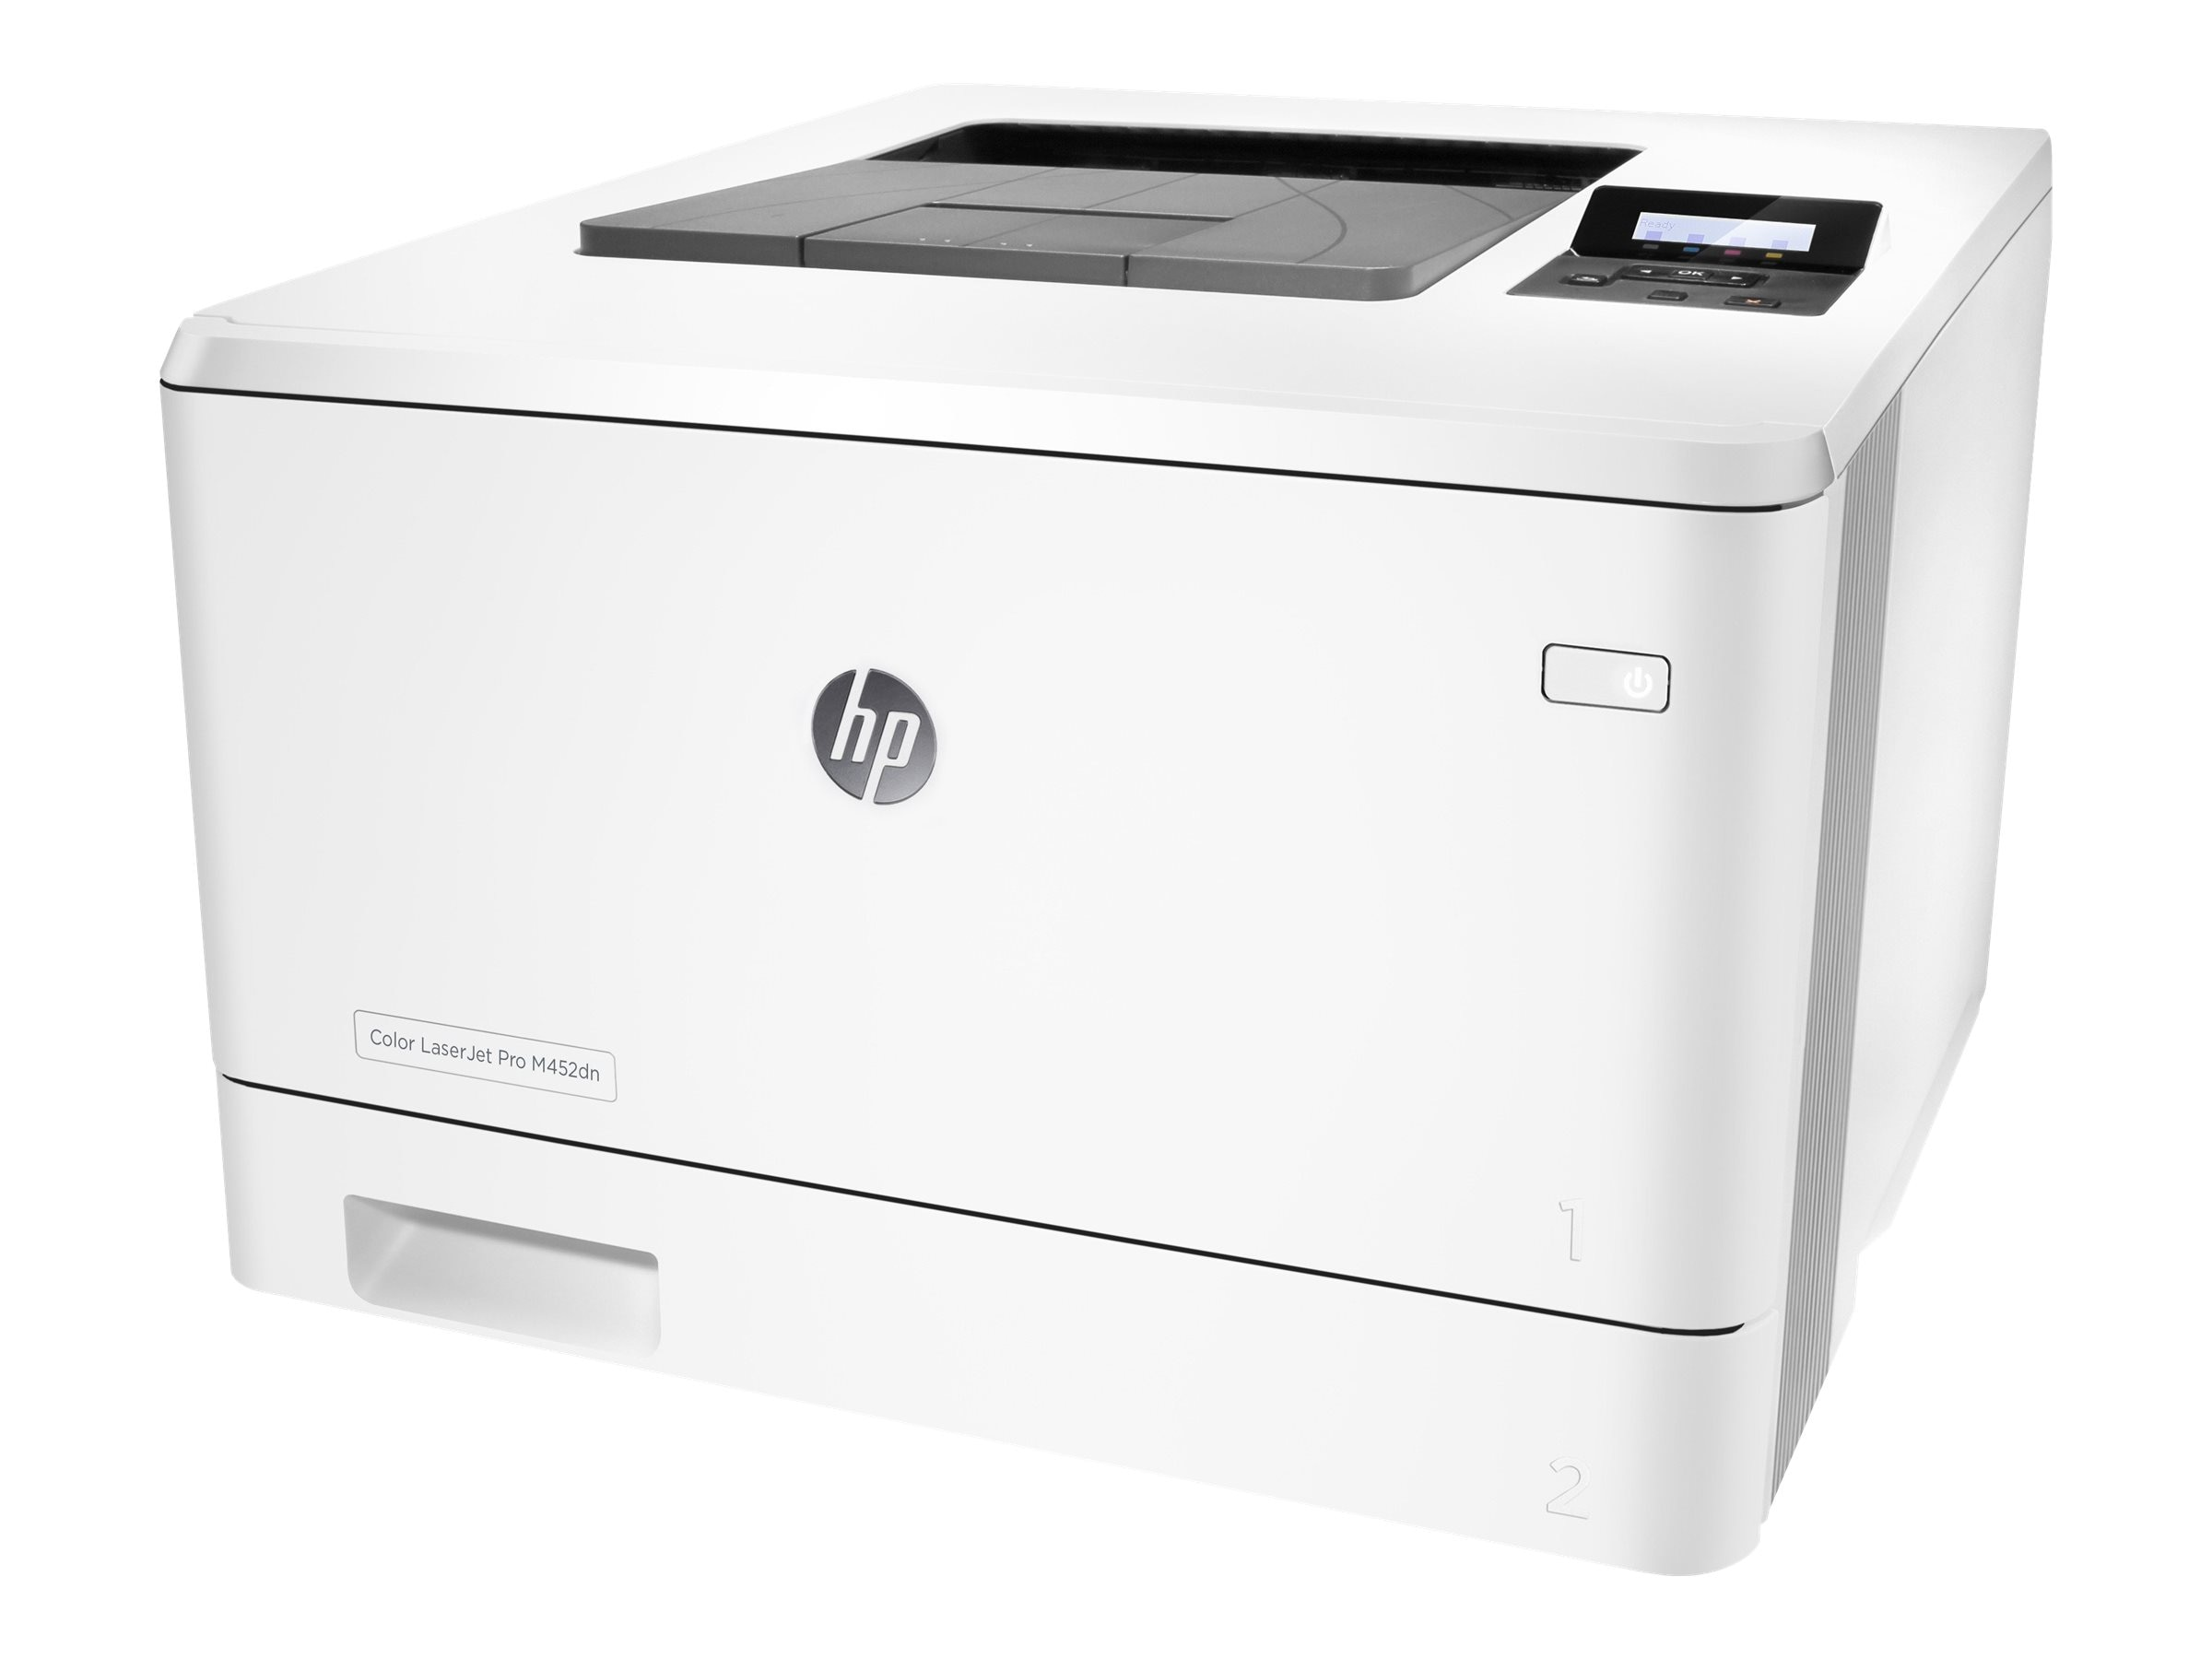 printers multi mono dcp wireless office function laser brother index printer